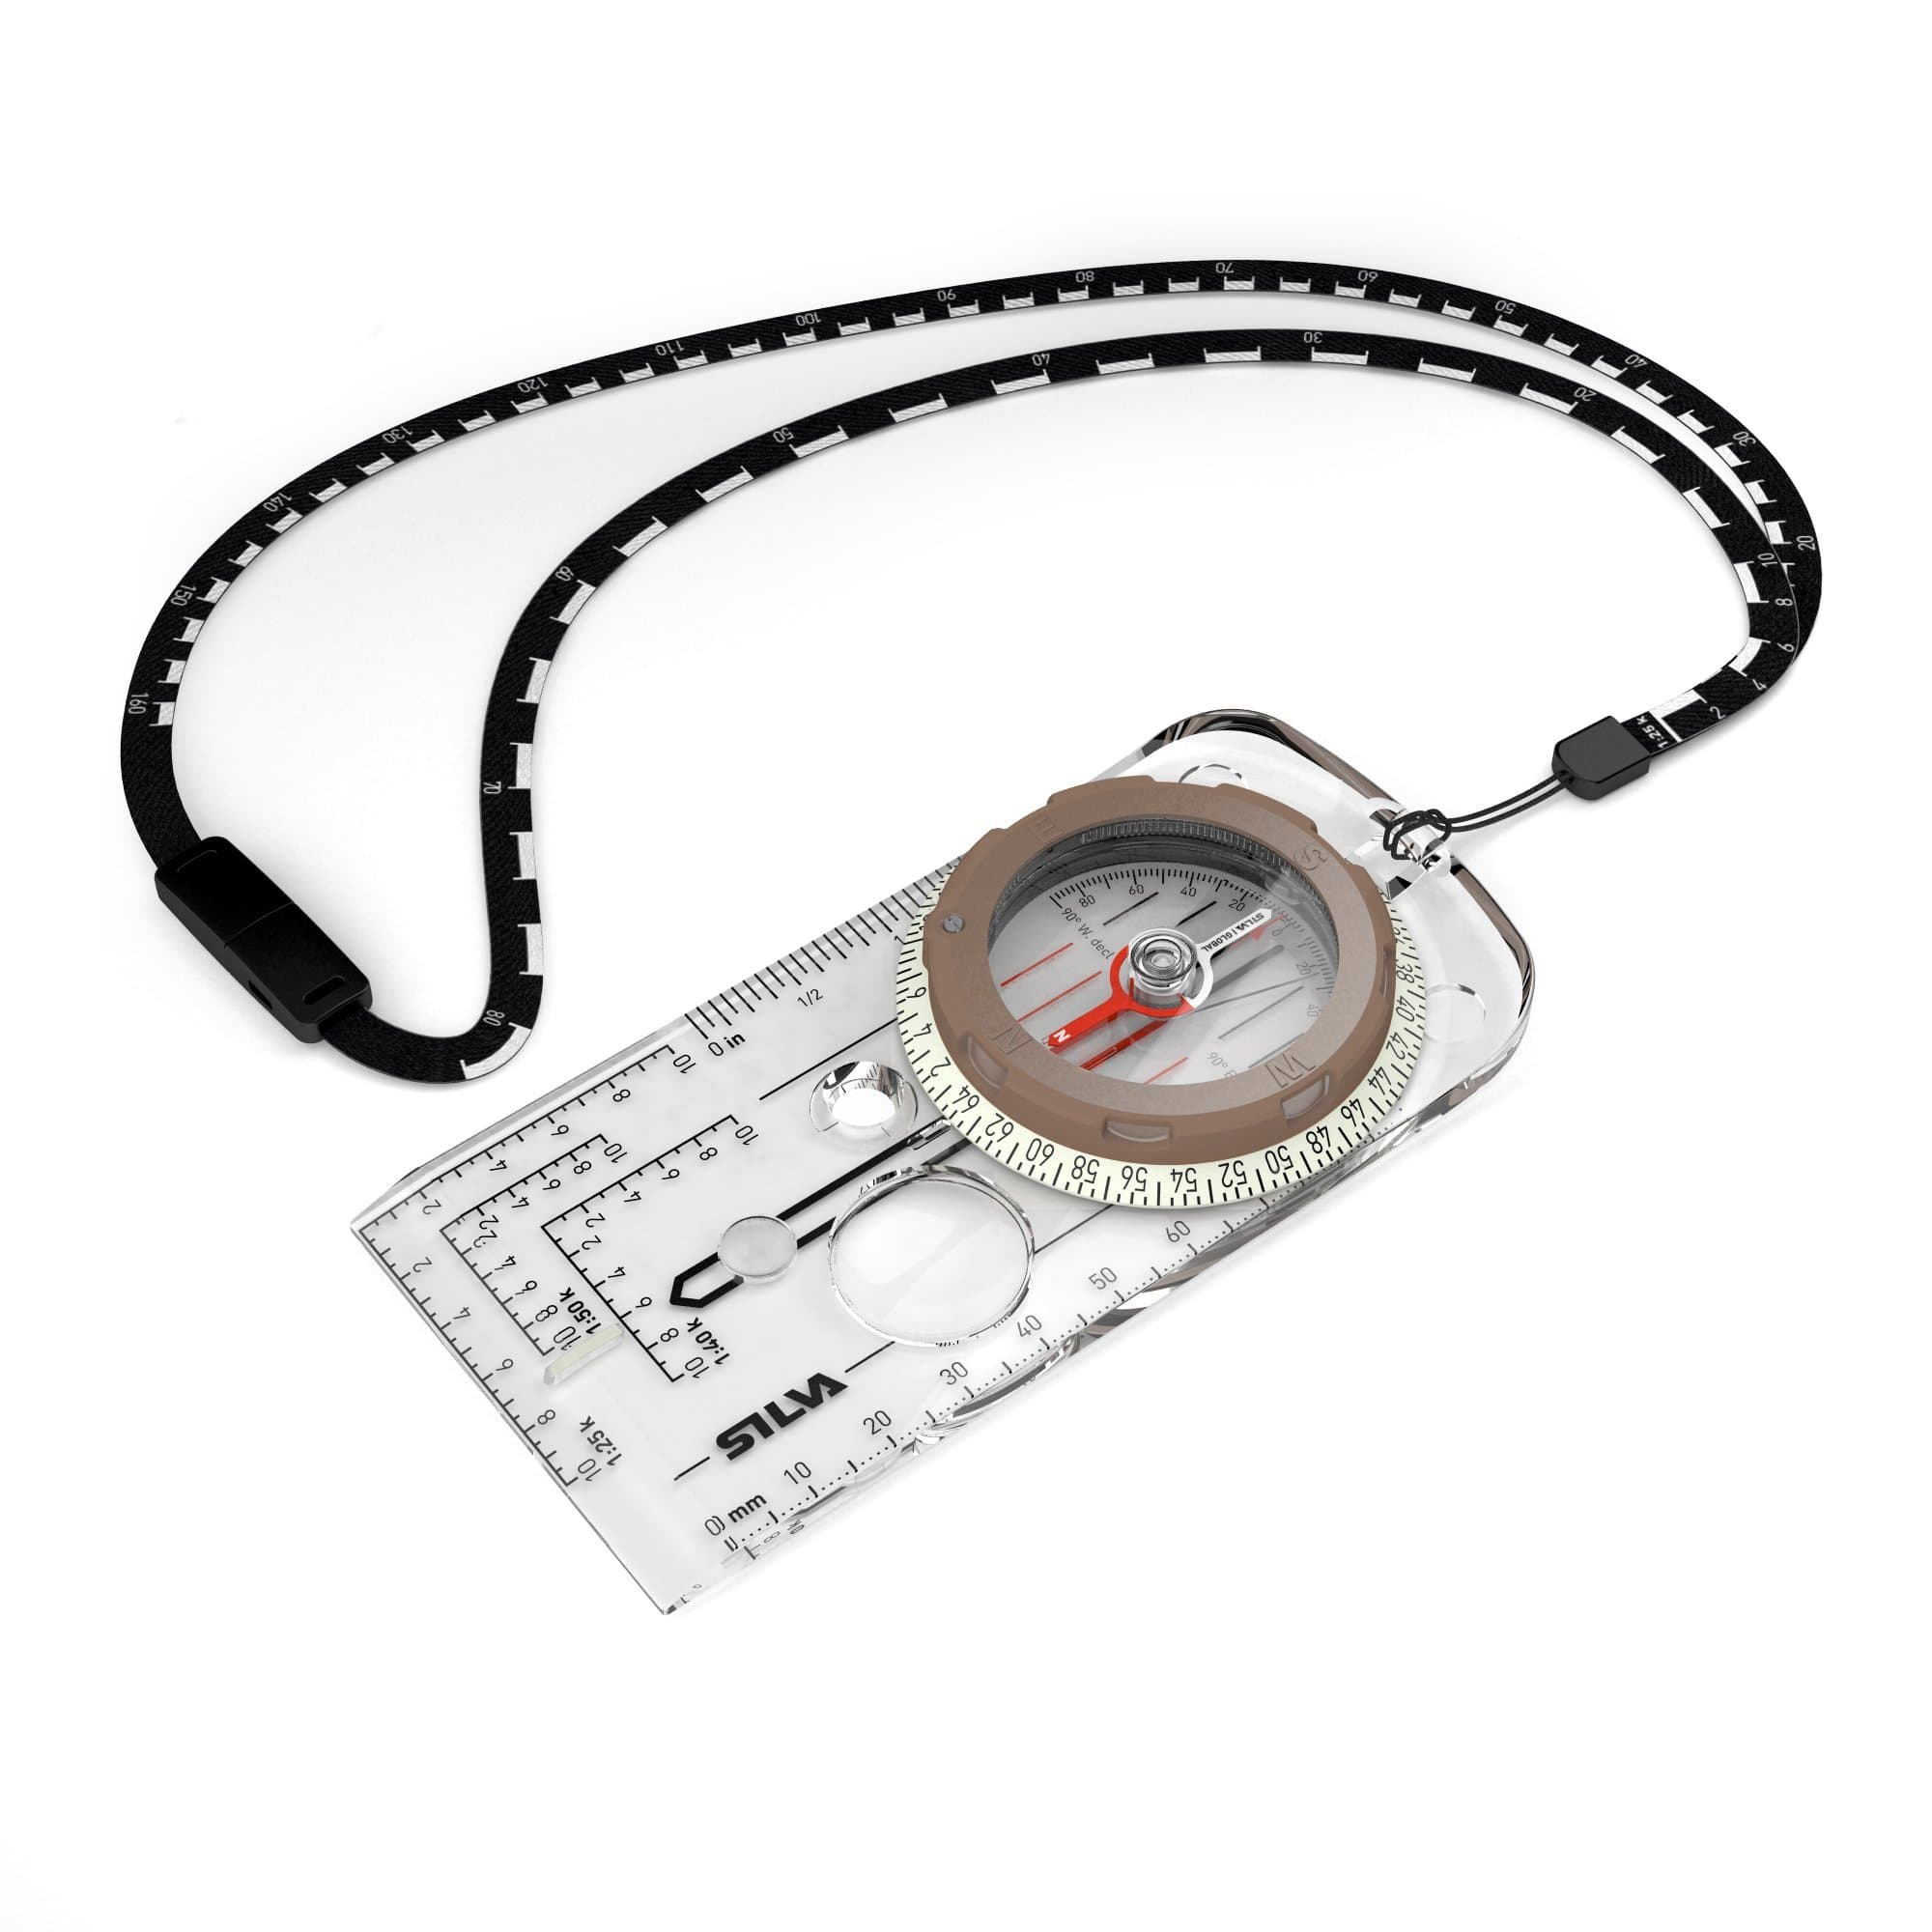 Military Base Plate 5-6400/360 Global Compass